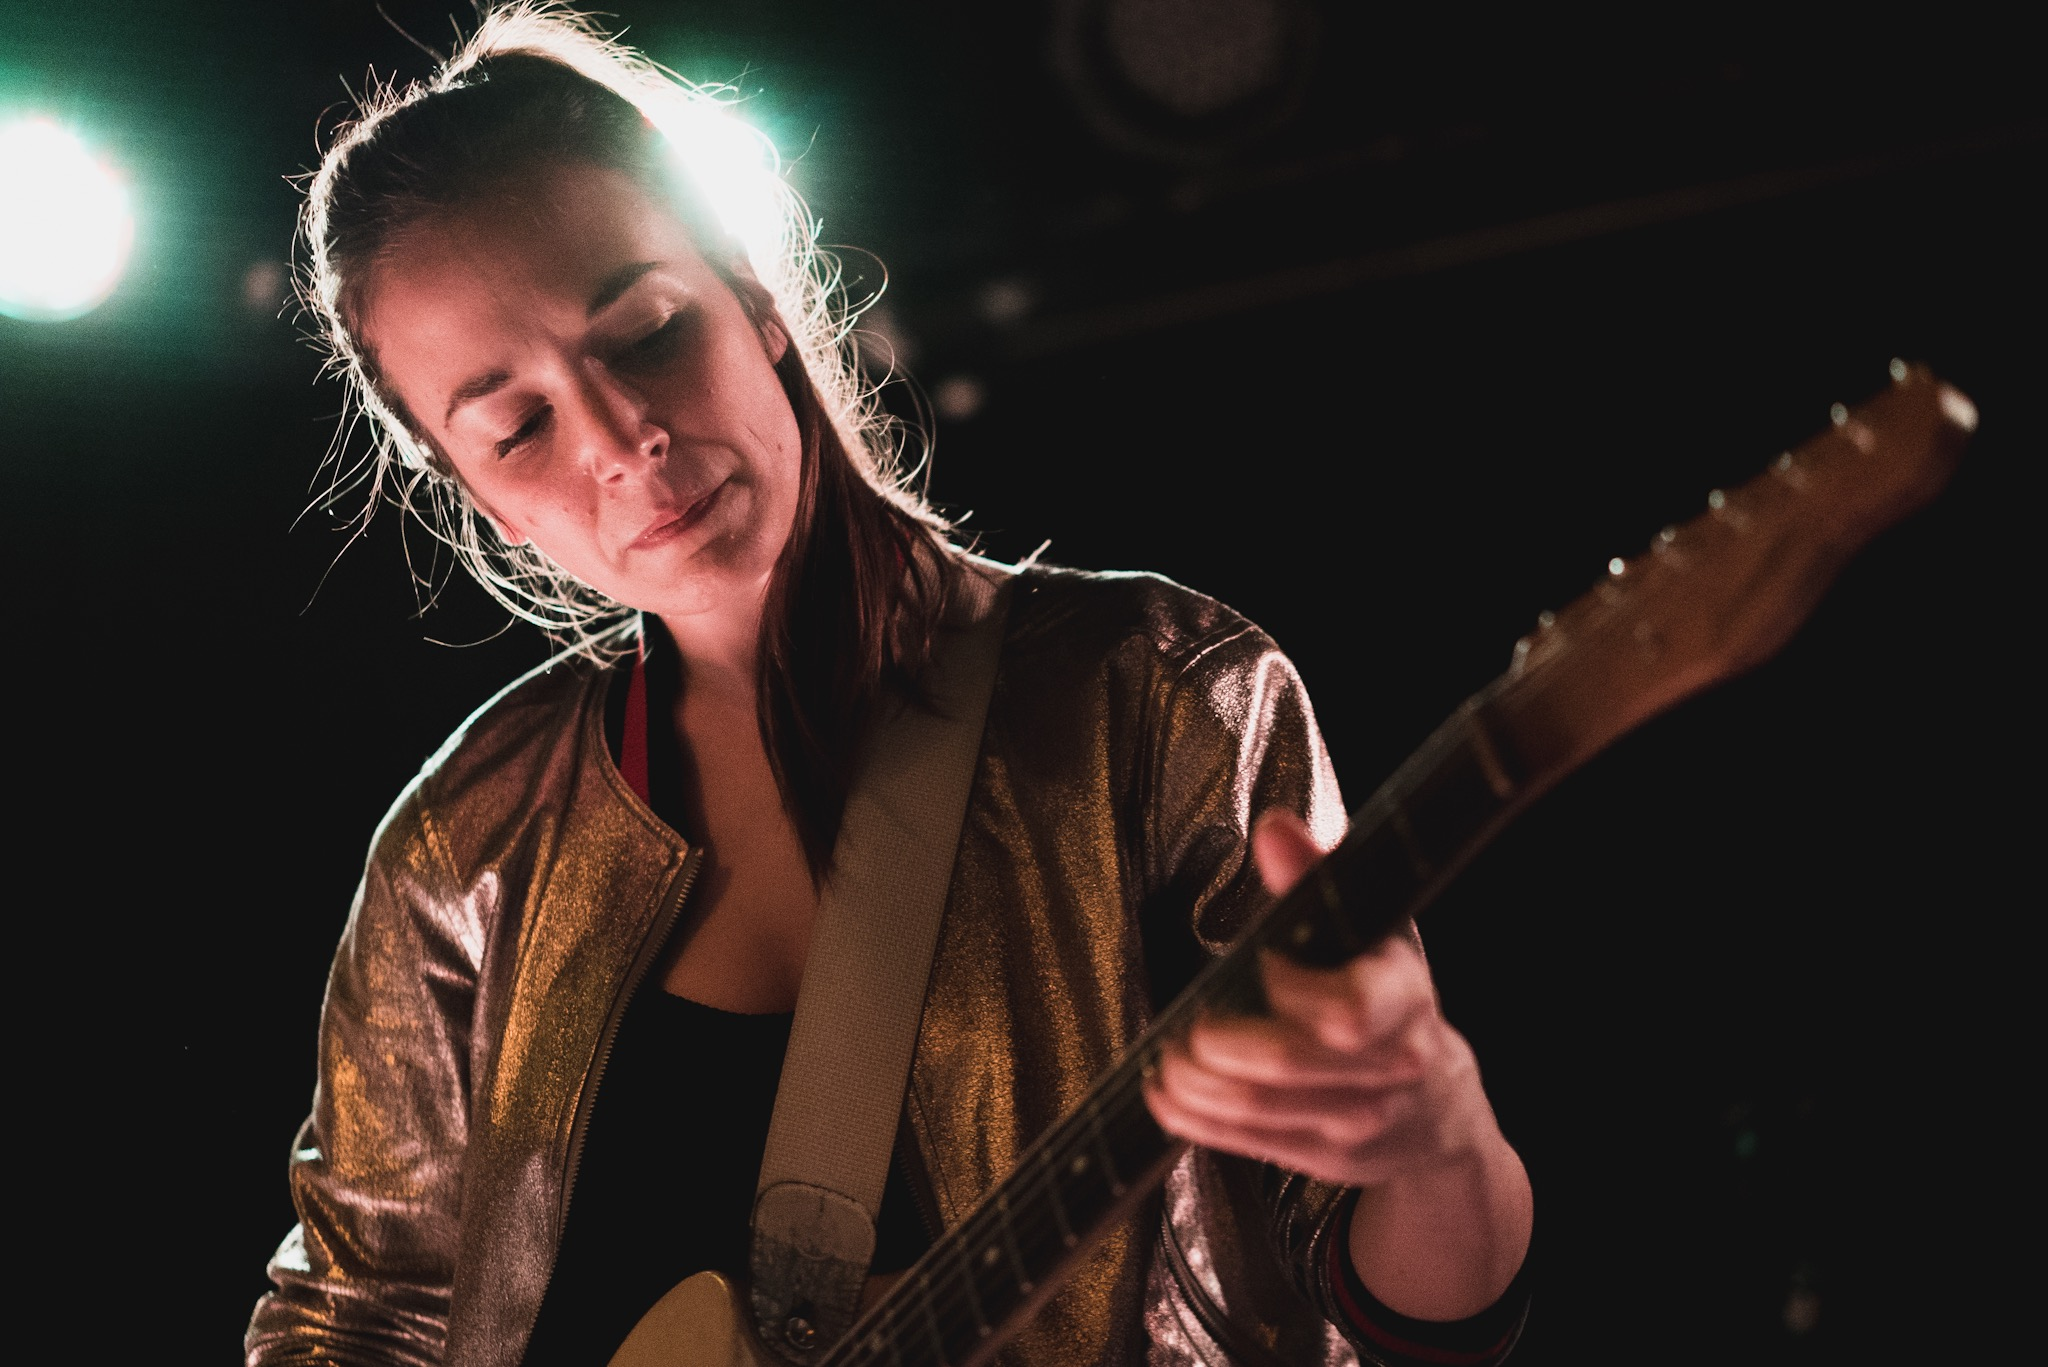 Margaret Glaspy at the Lexington